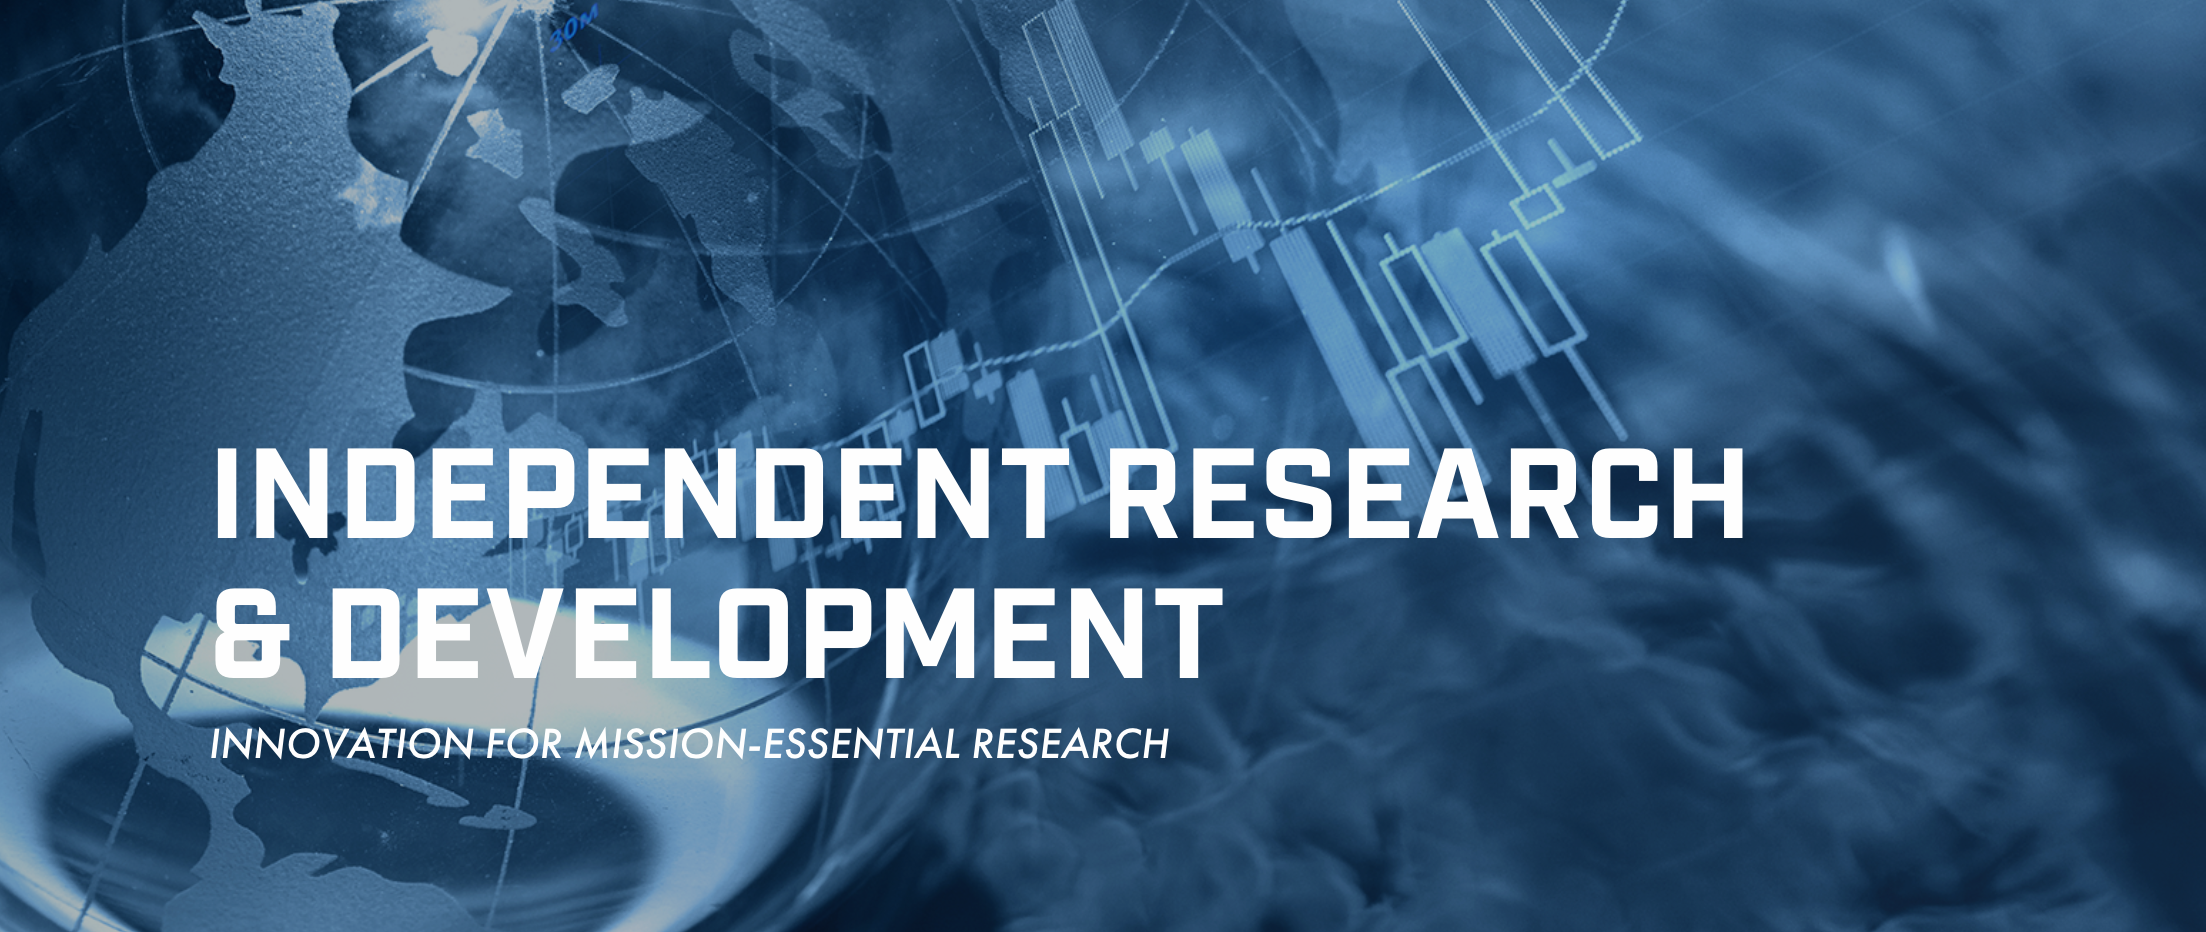 NSRI is offering up to six awards of $15,000-25,000 in funding to University of Nebraska researchers, faculty, students and staff for research, development and training programs in its mission focus areas.